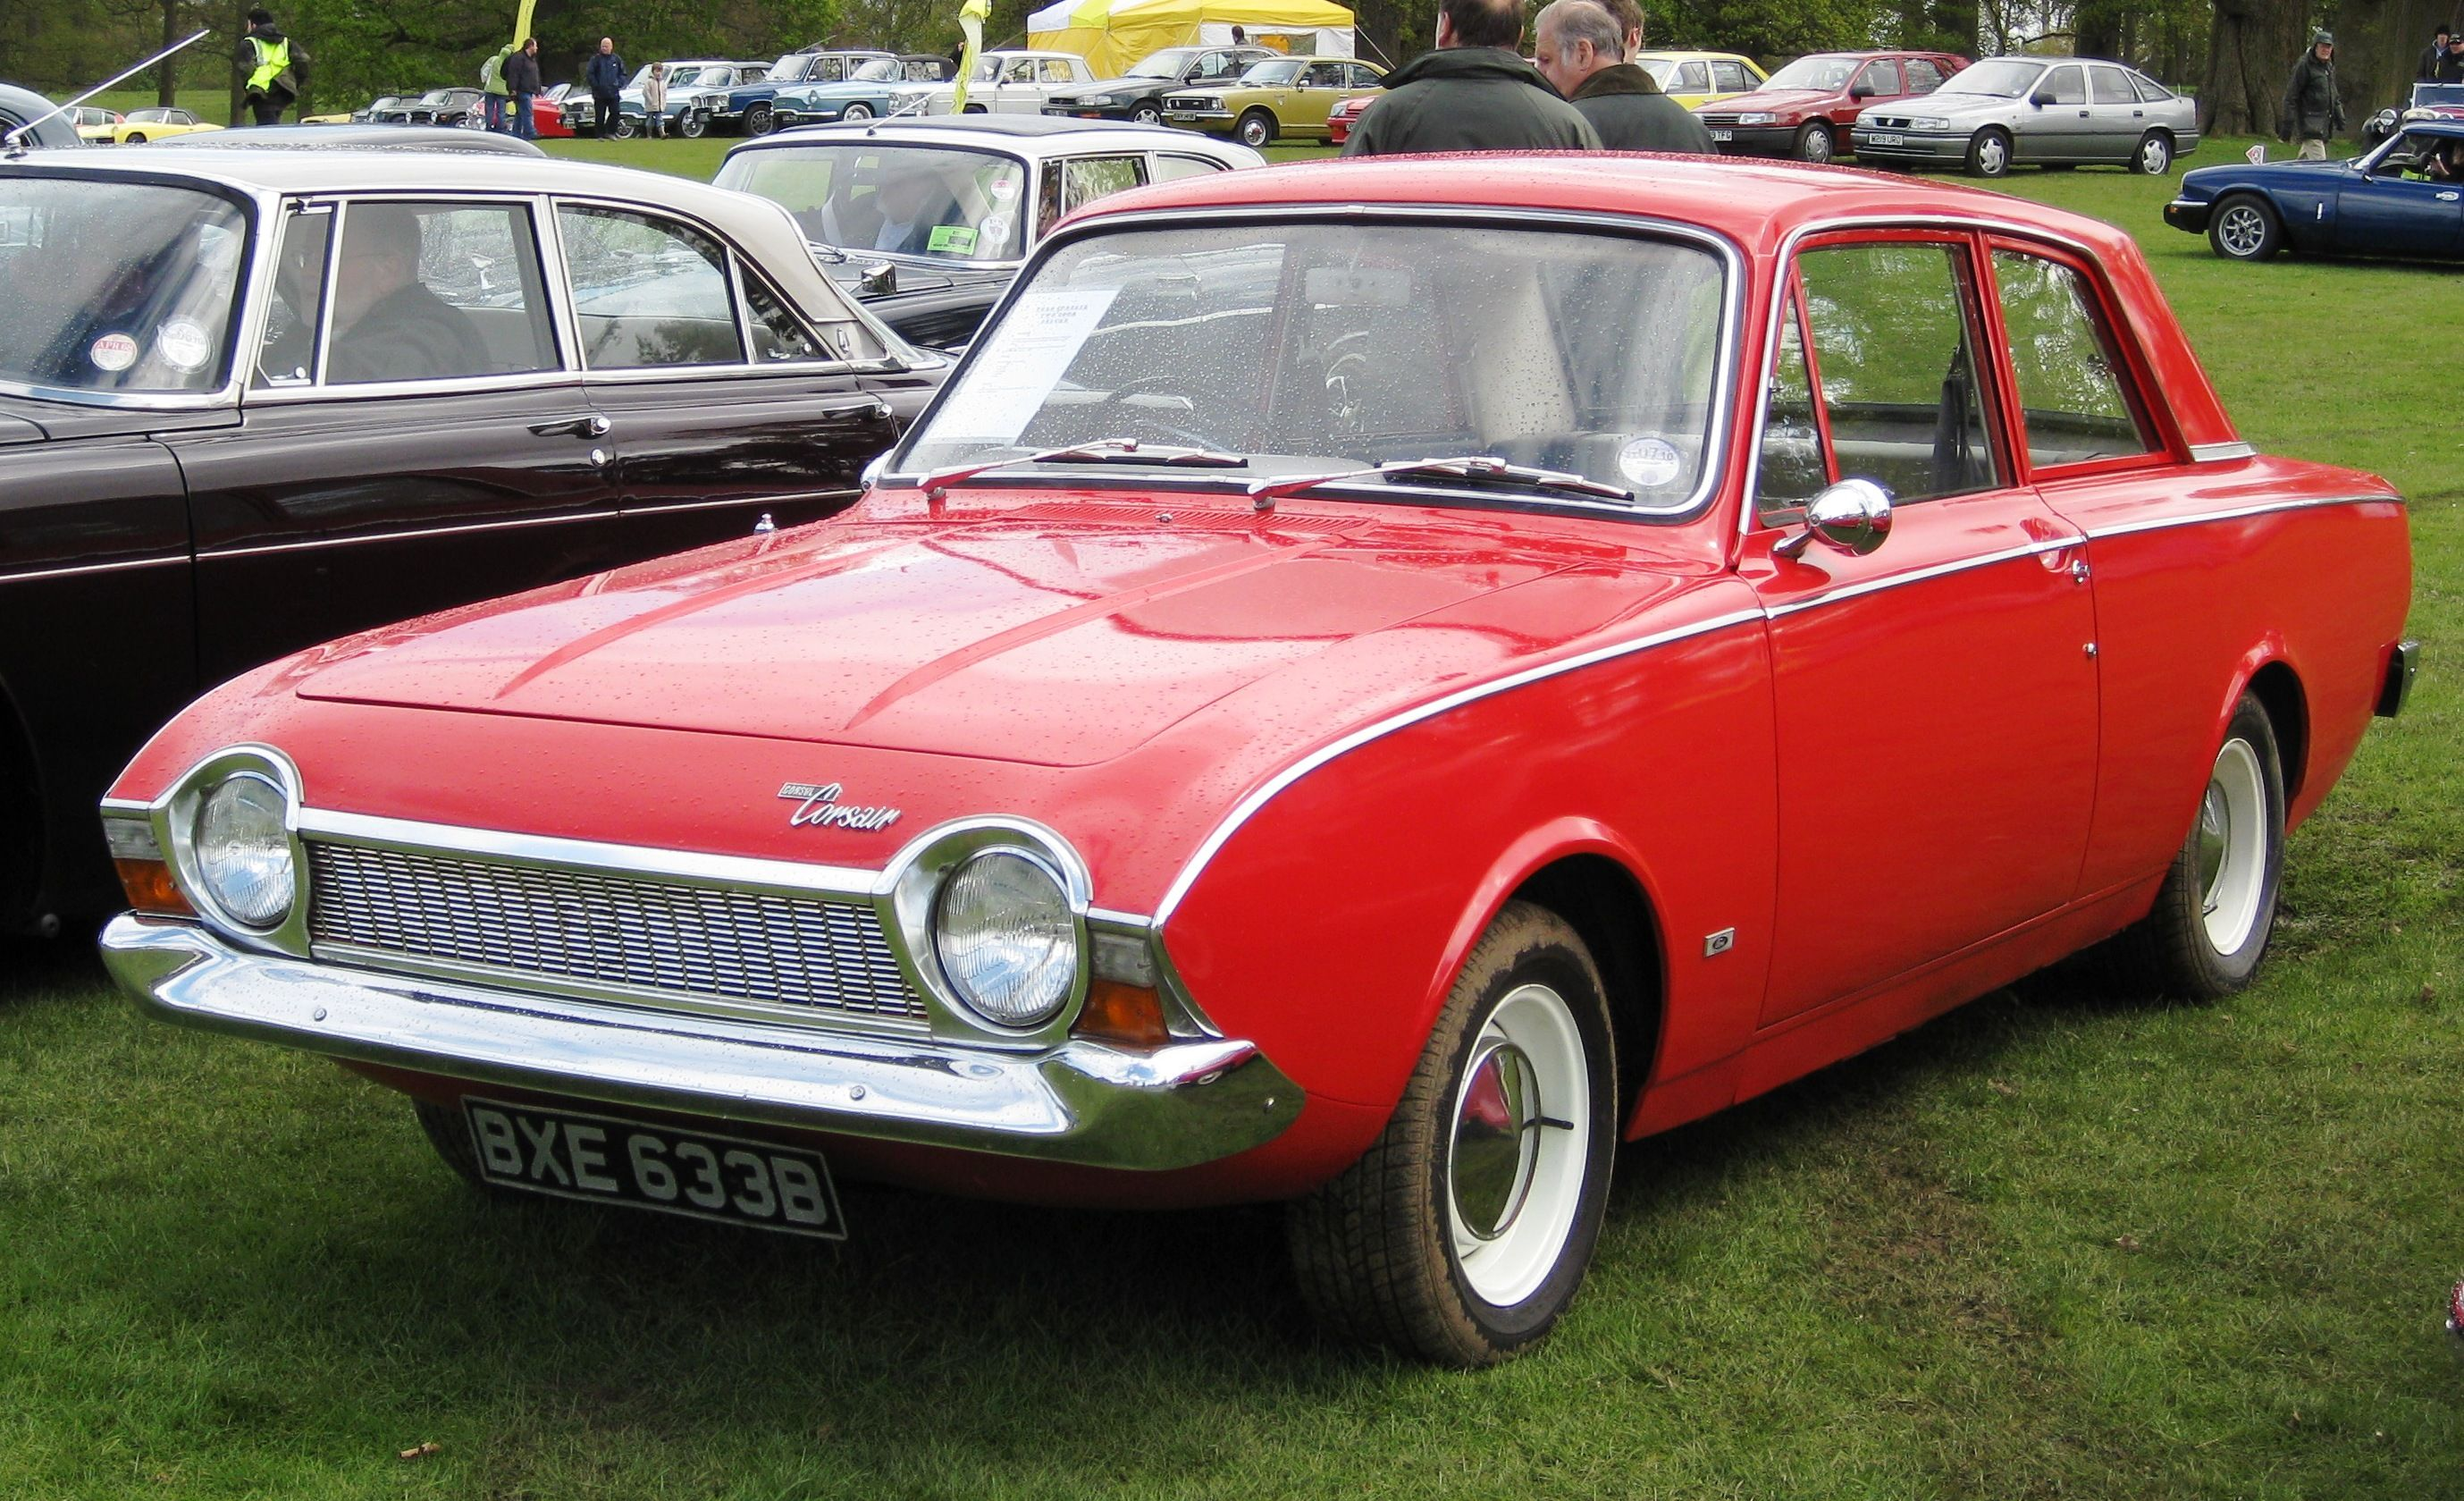 ford corsair 70s cars, Cars, Cars uk